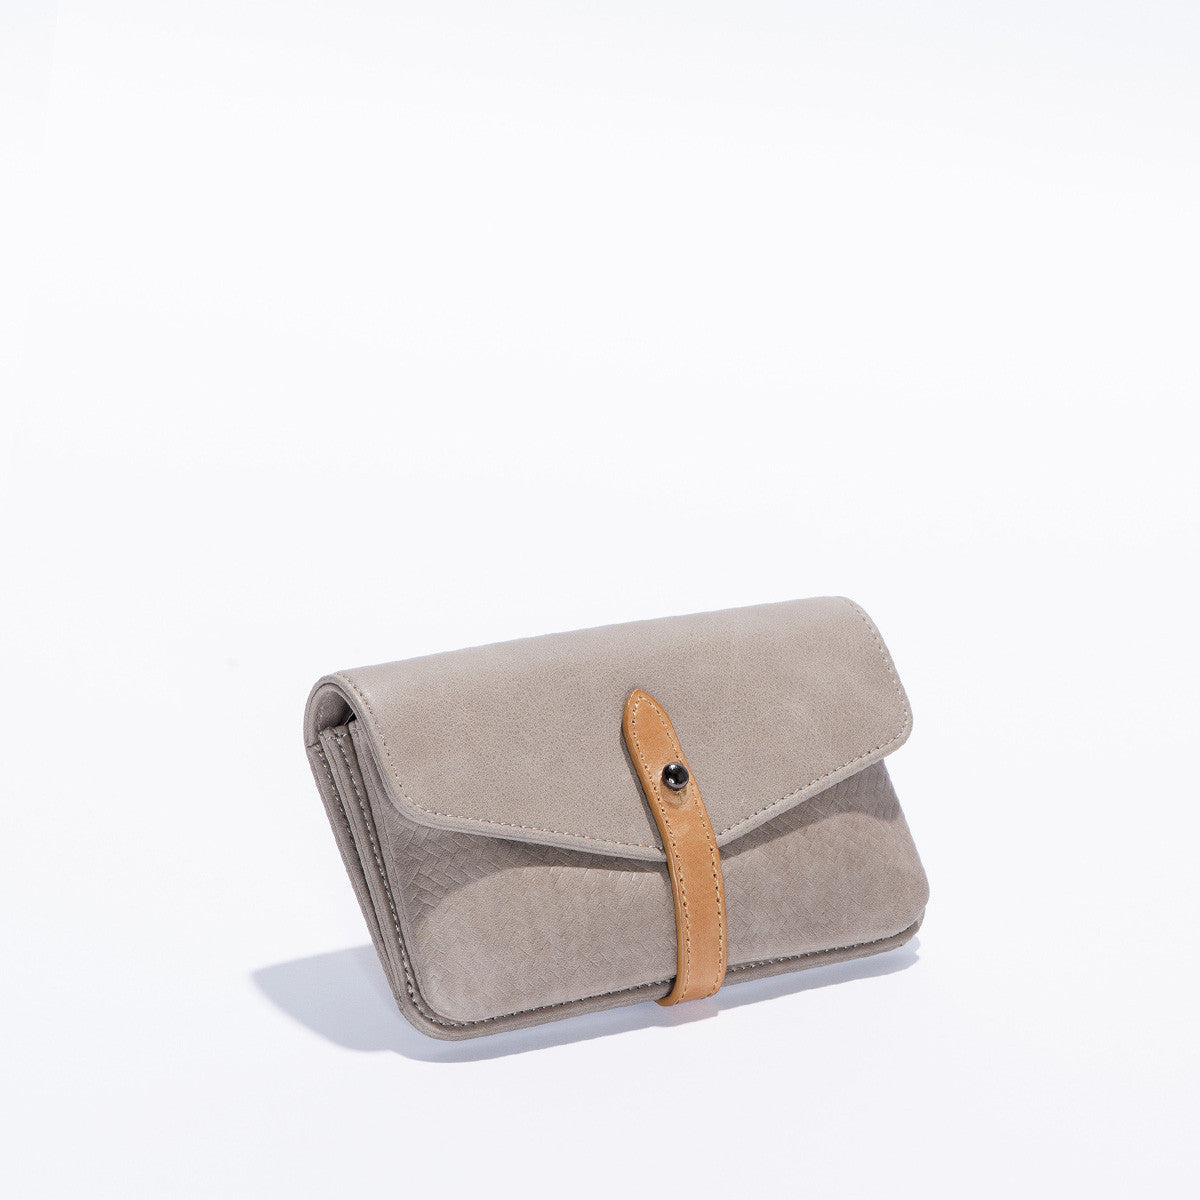 The Elements Wallet - Cement / Tan